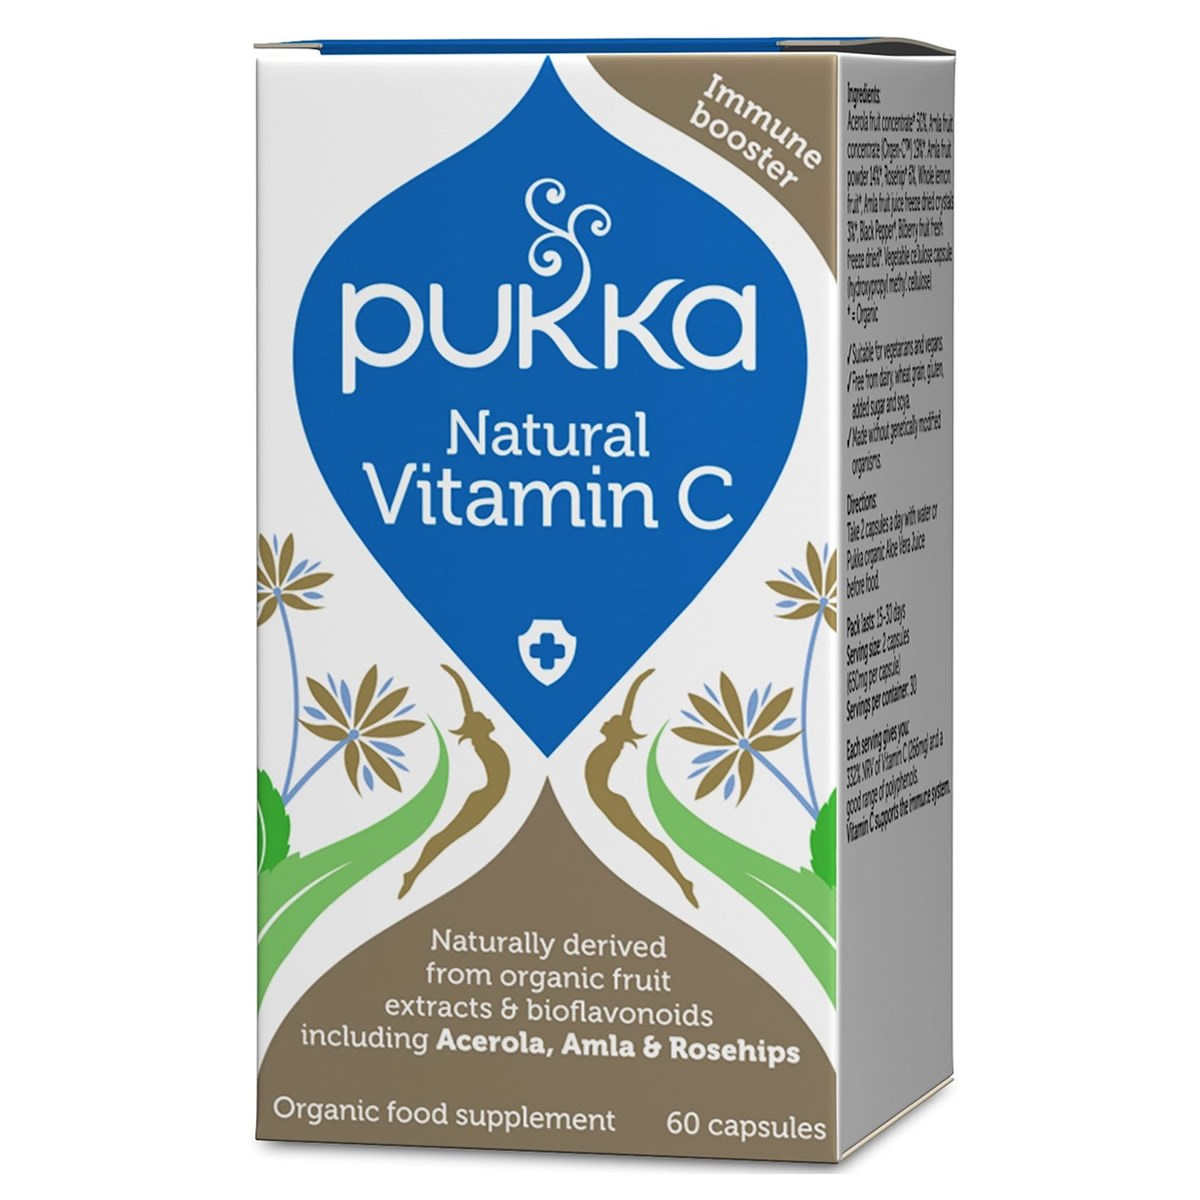 Pukka Natural Vitamin C Capsules